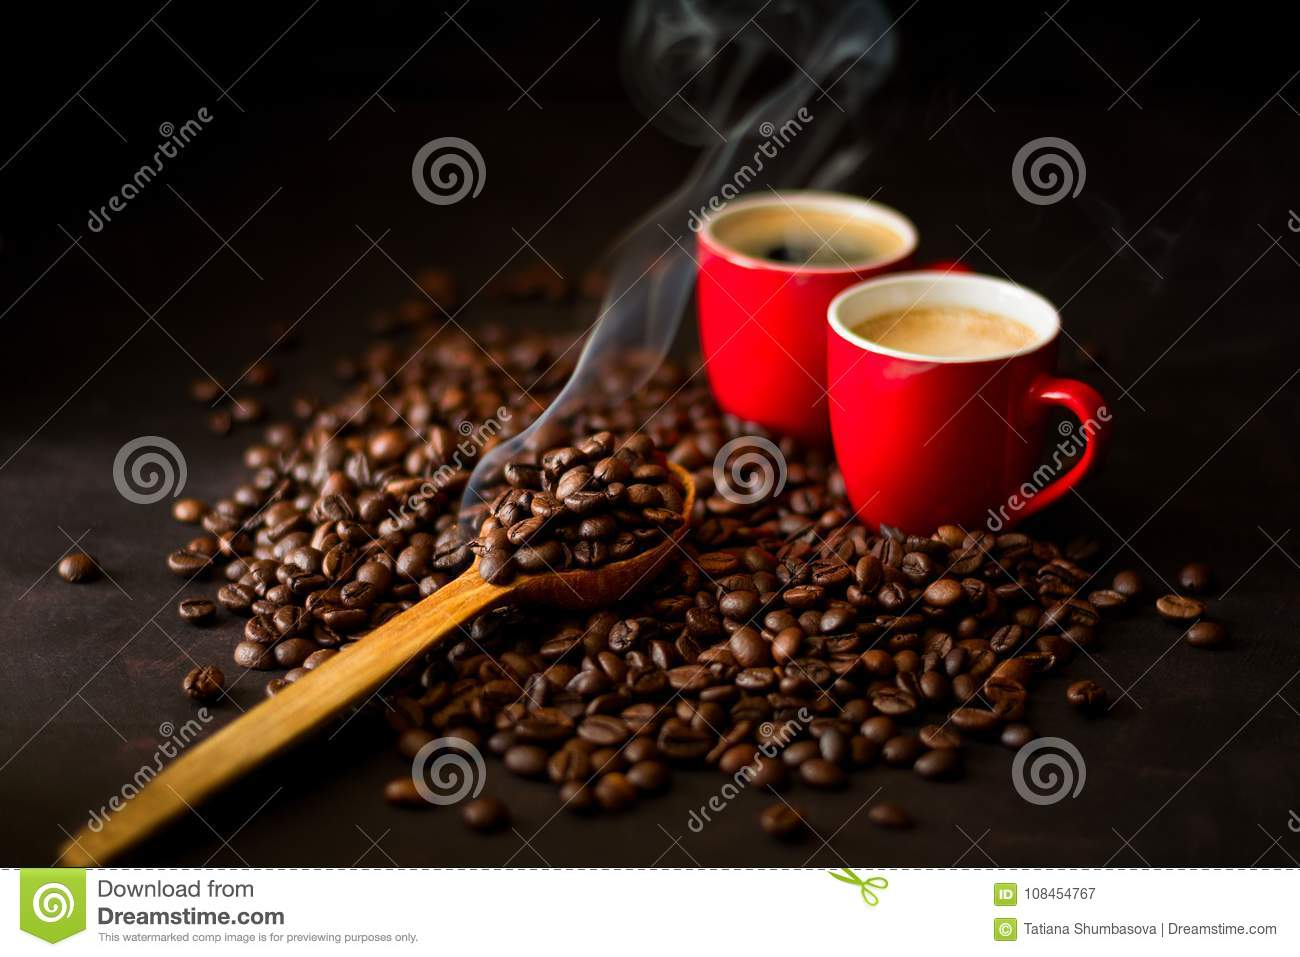 Two red cups of espresso with coffee beans on dark wooden background.